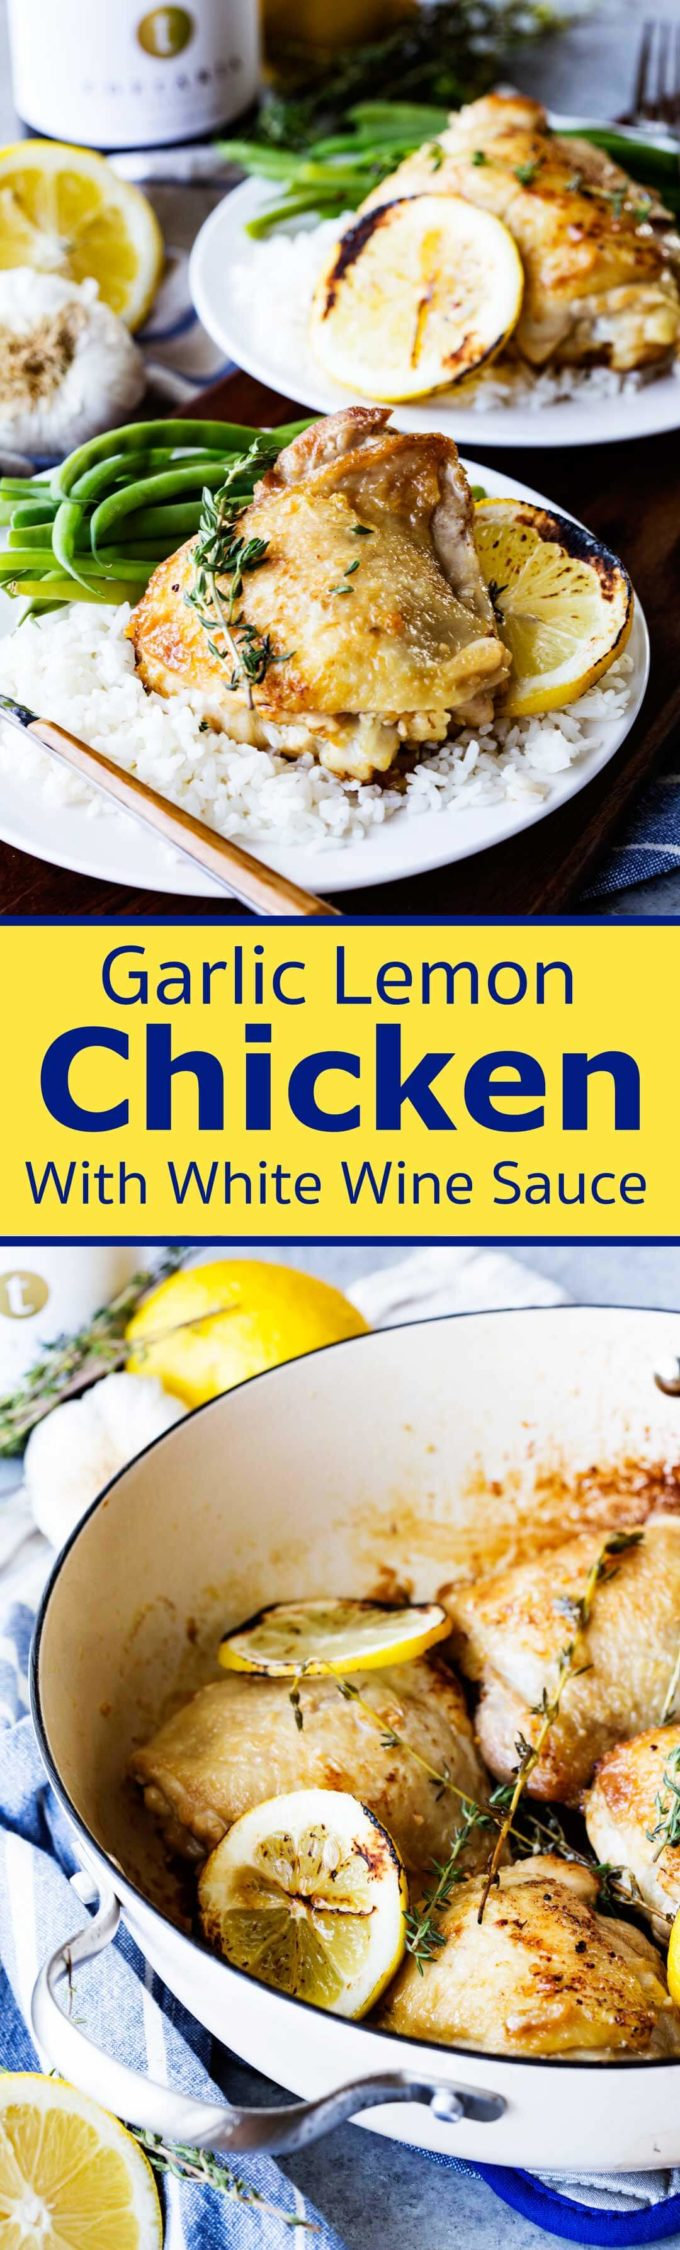 Skillet Garlic Lemon Chicken with White Wine Sauce is a restaurant quality meal.